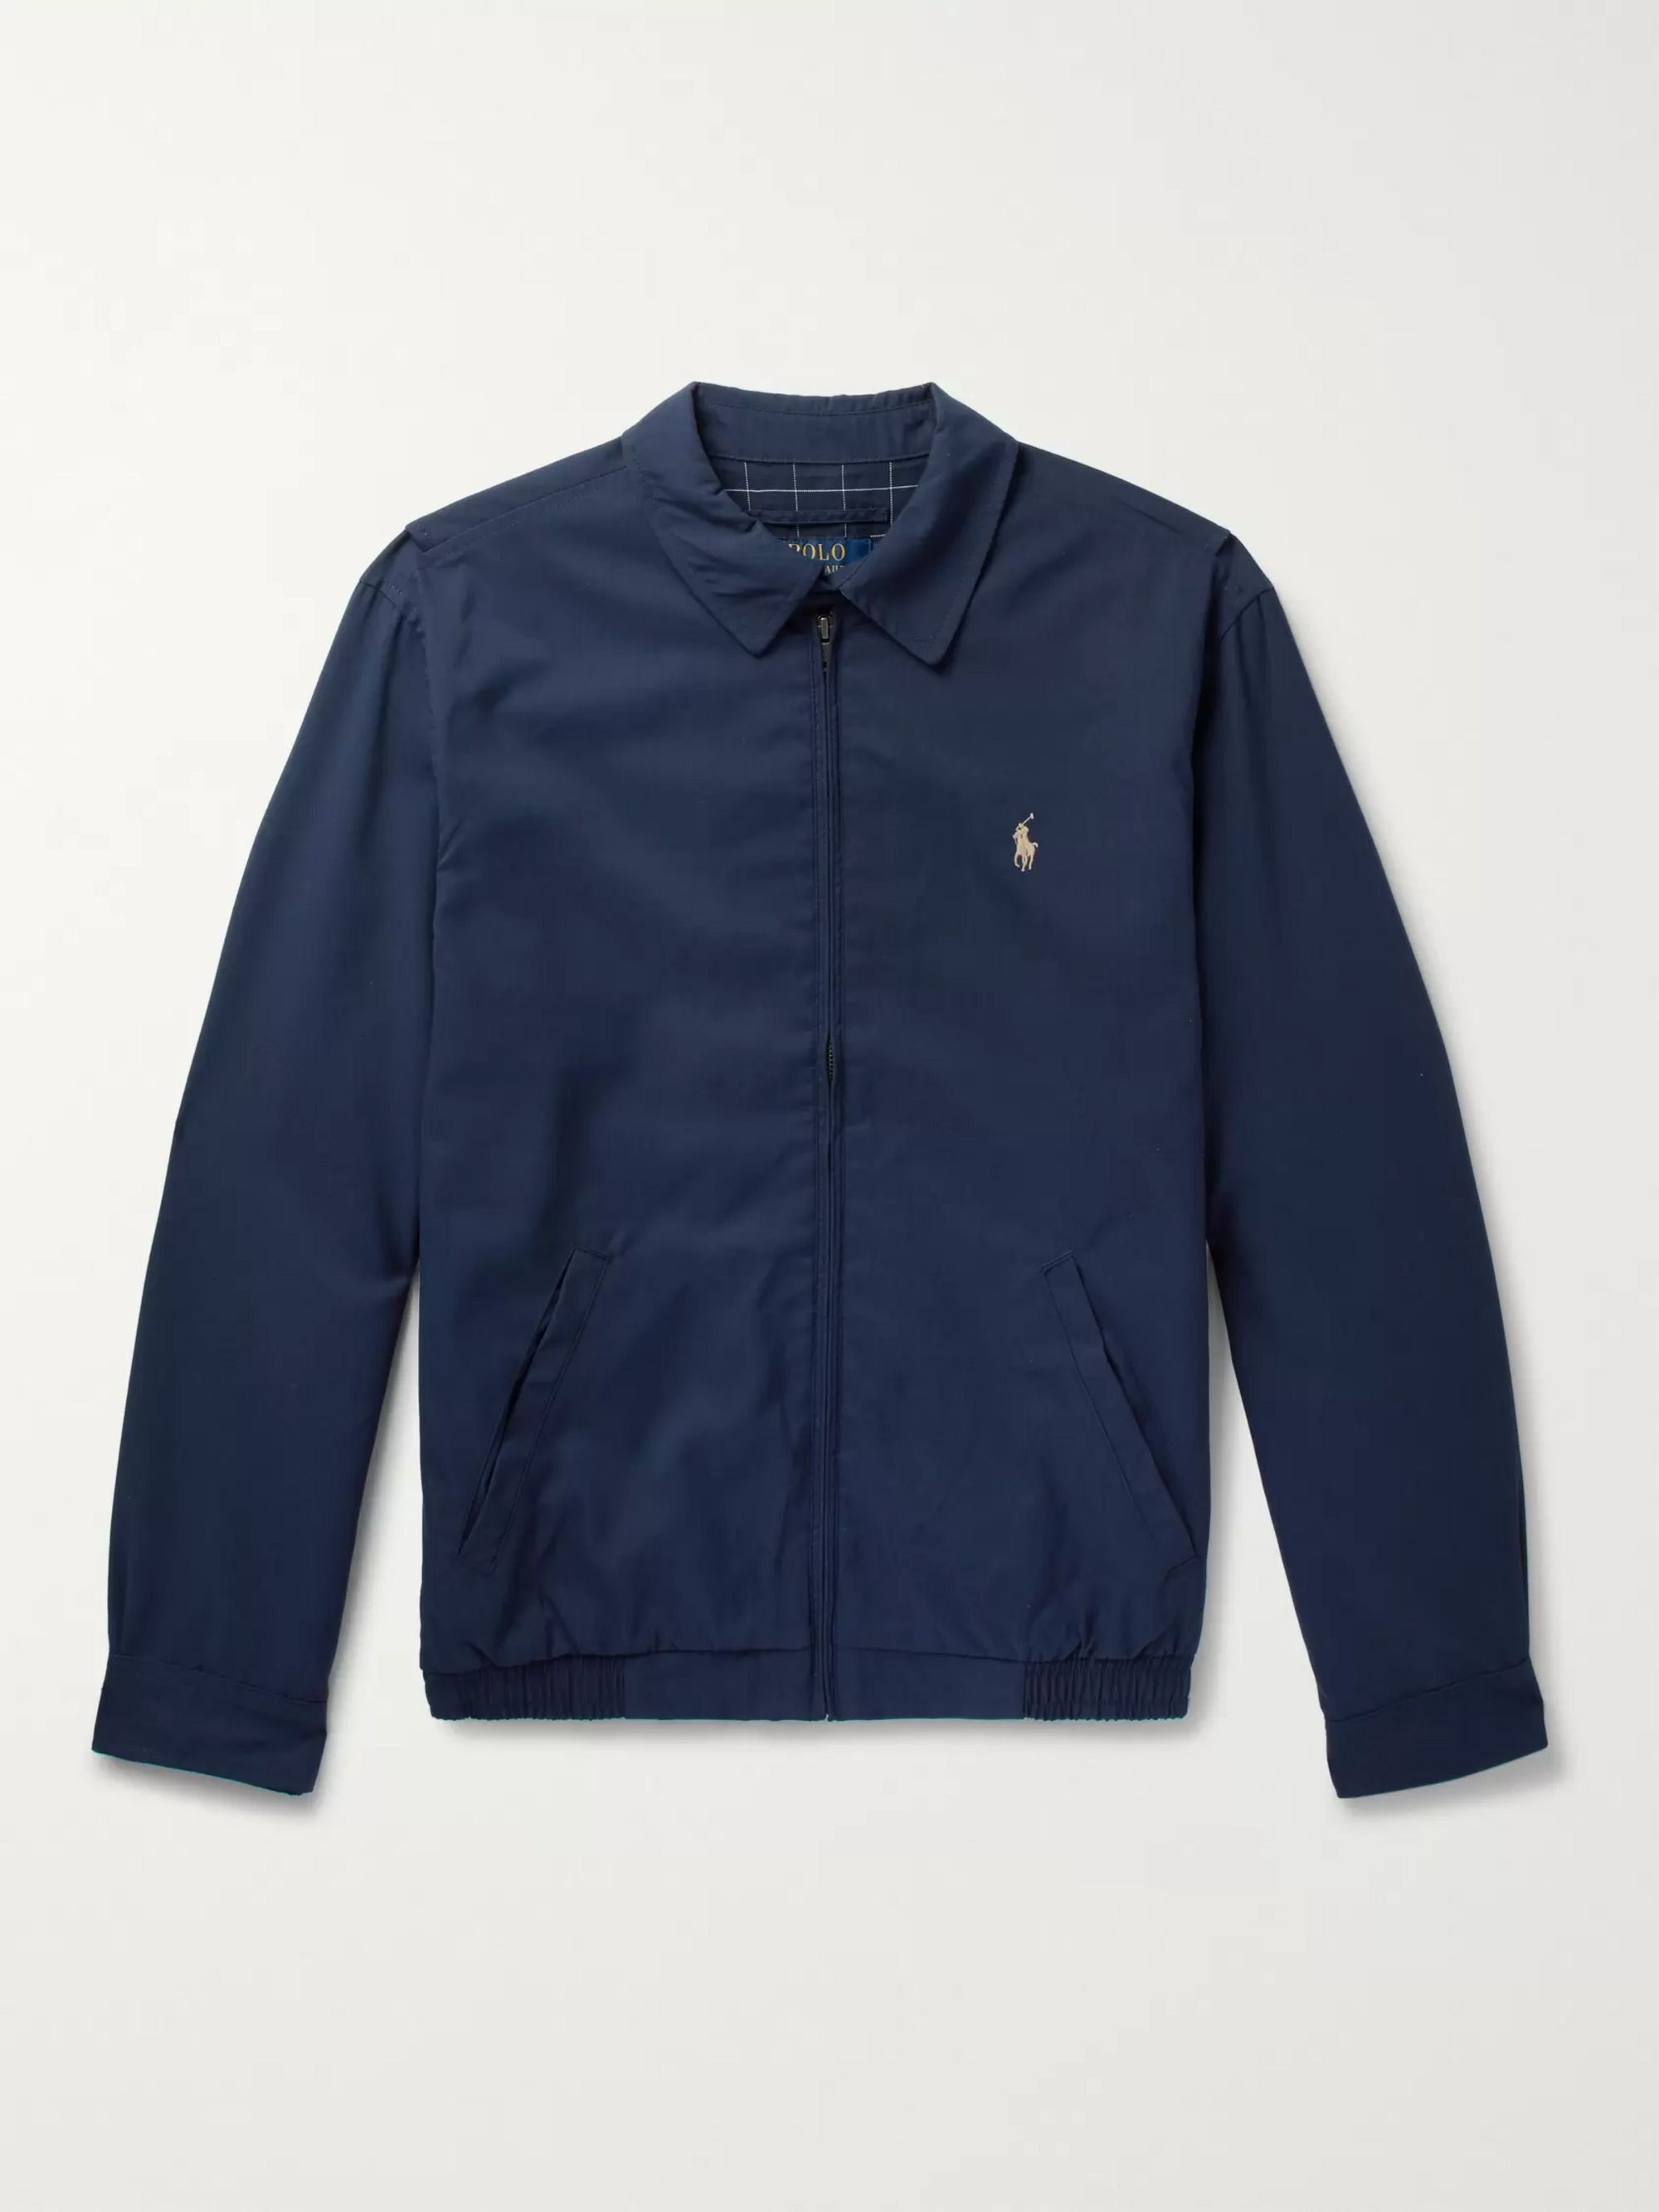 get cheap online for sale select for authentic Twill Blouson Jacket